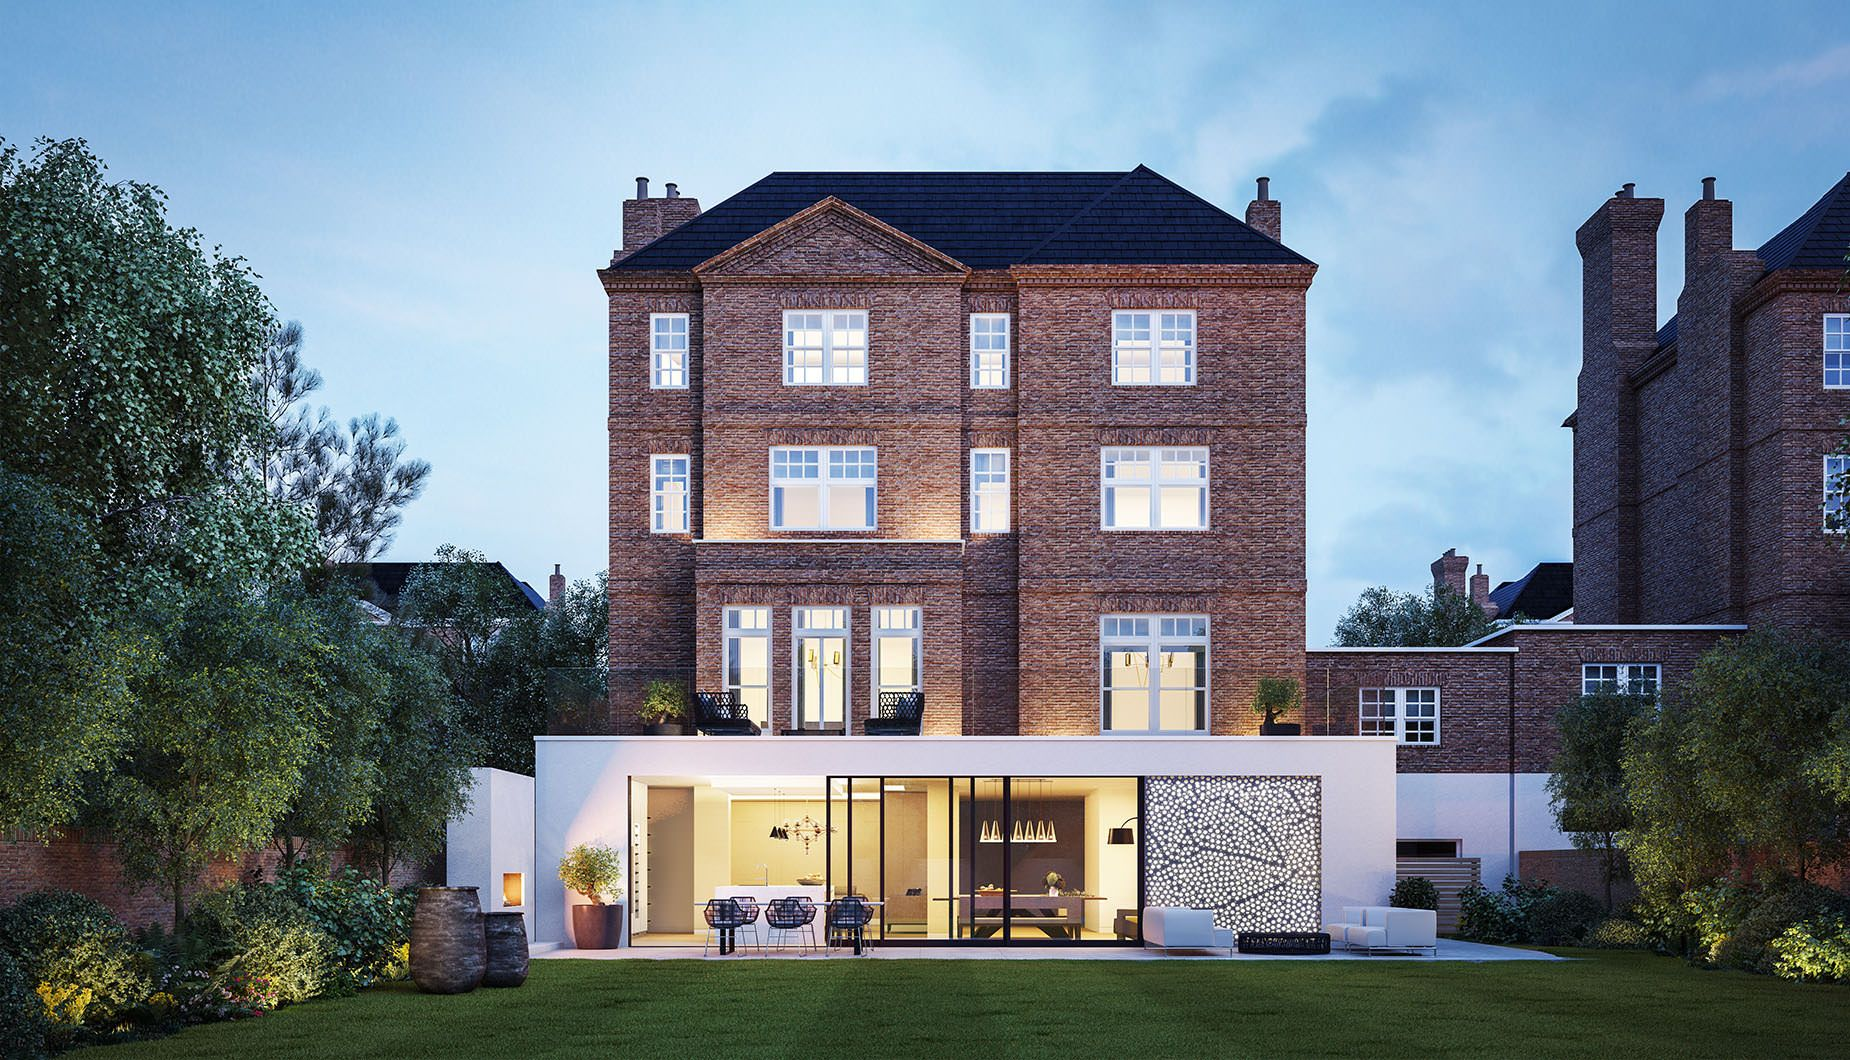 Stunning Large Victorian Villa With Modern Extension